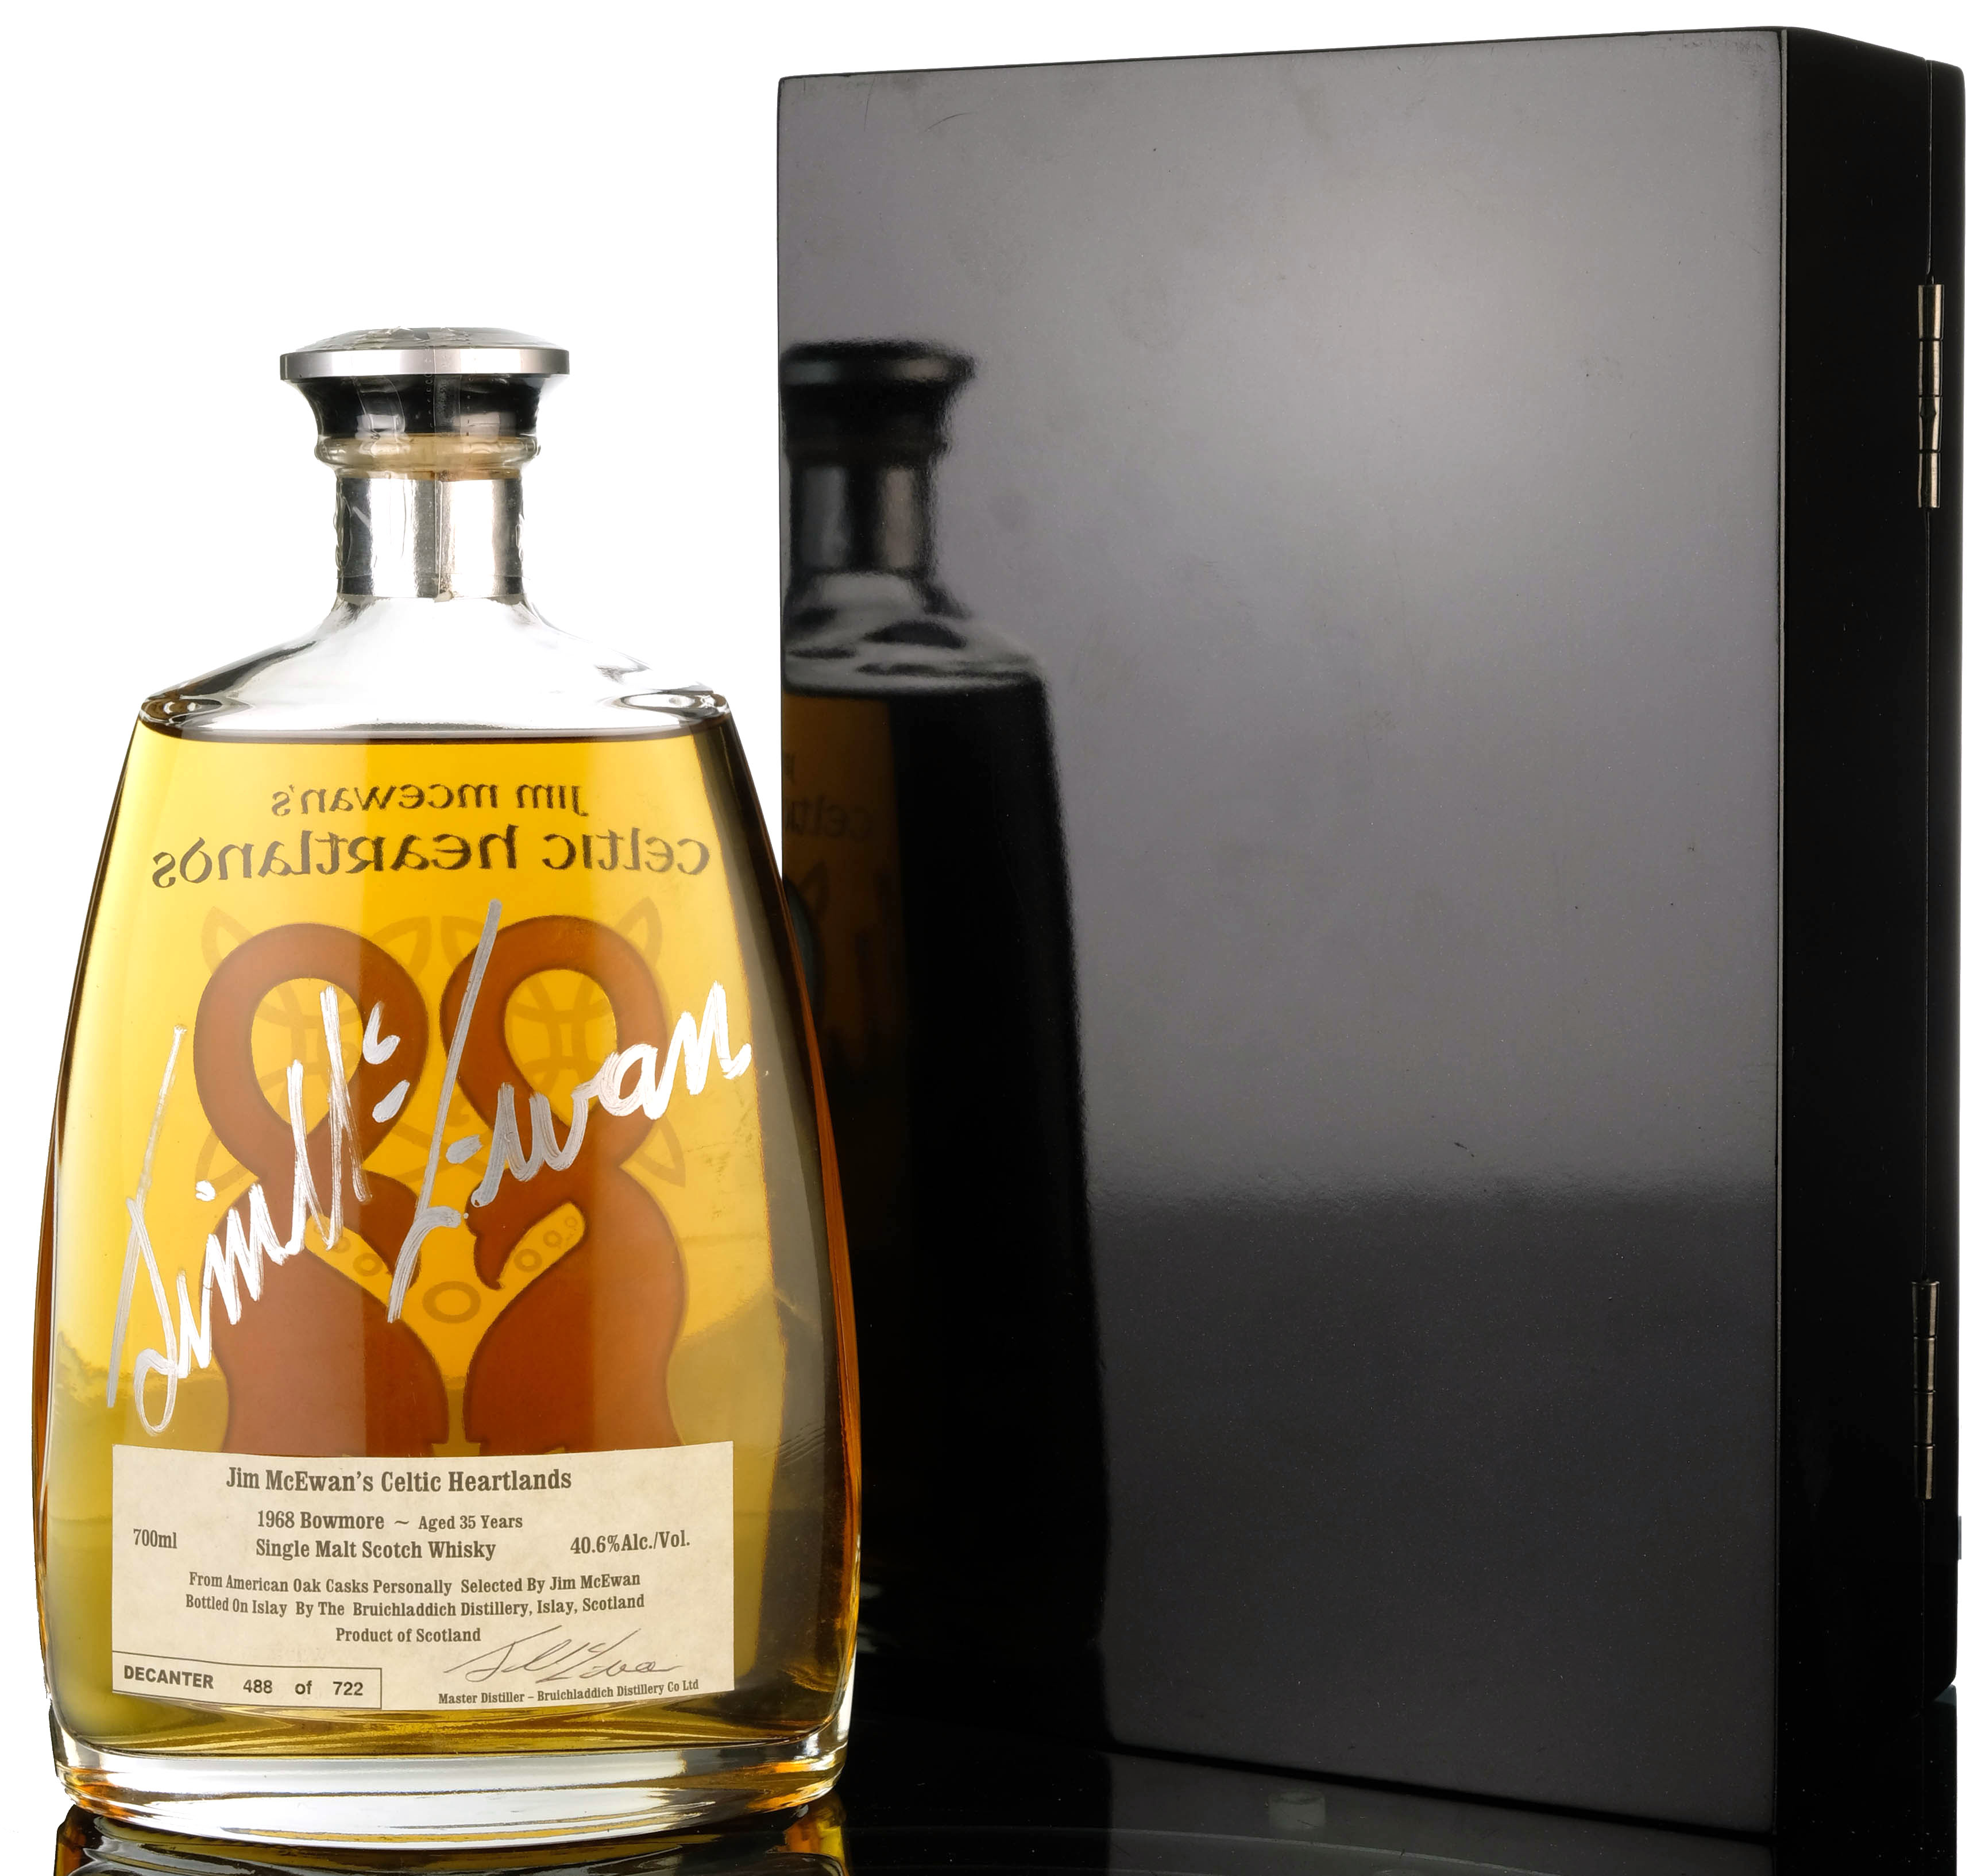 bowmore 1968 - 35 year old - celtic heartlands